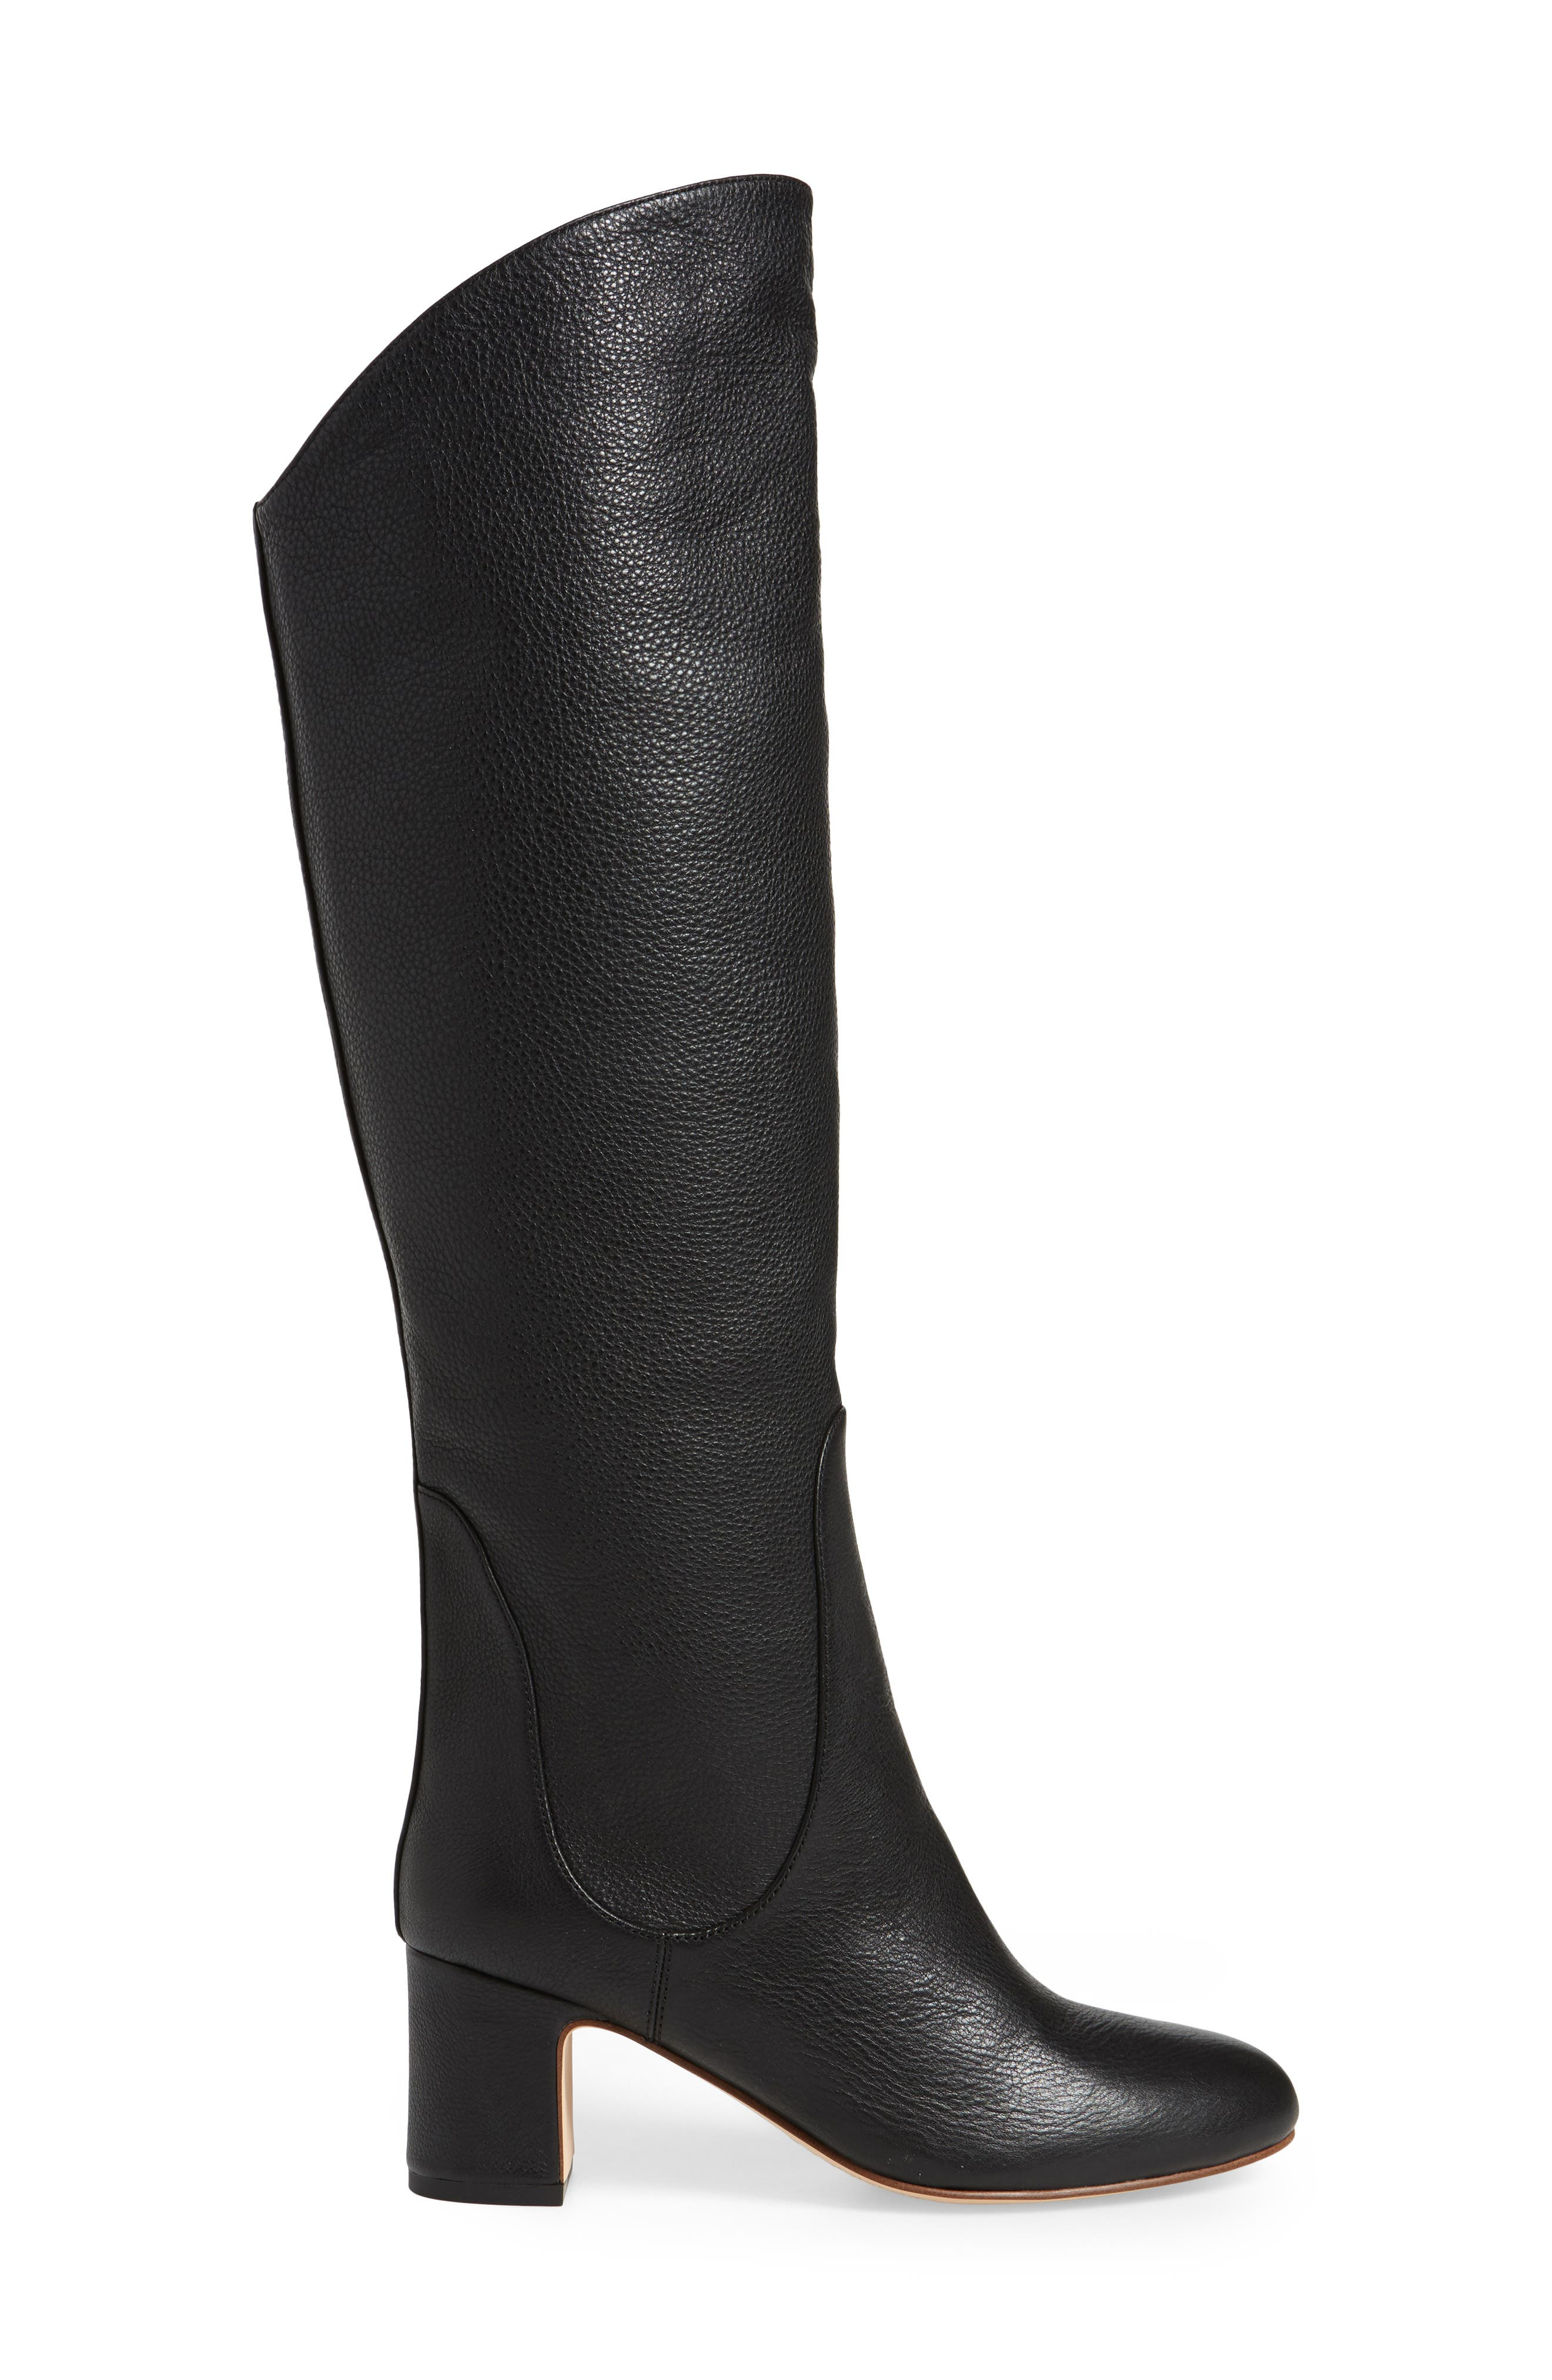 Nick Knee High Boot,                             Alternate thumbnail 4, color,                             Black Leather